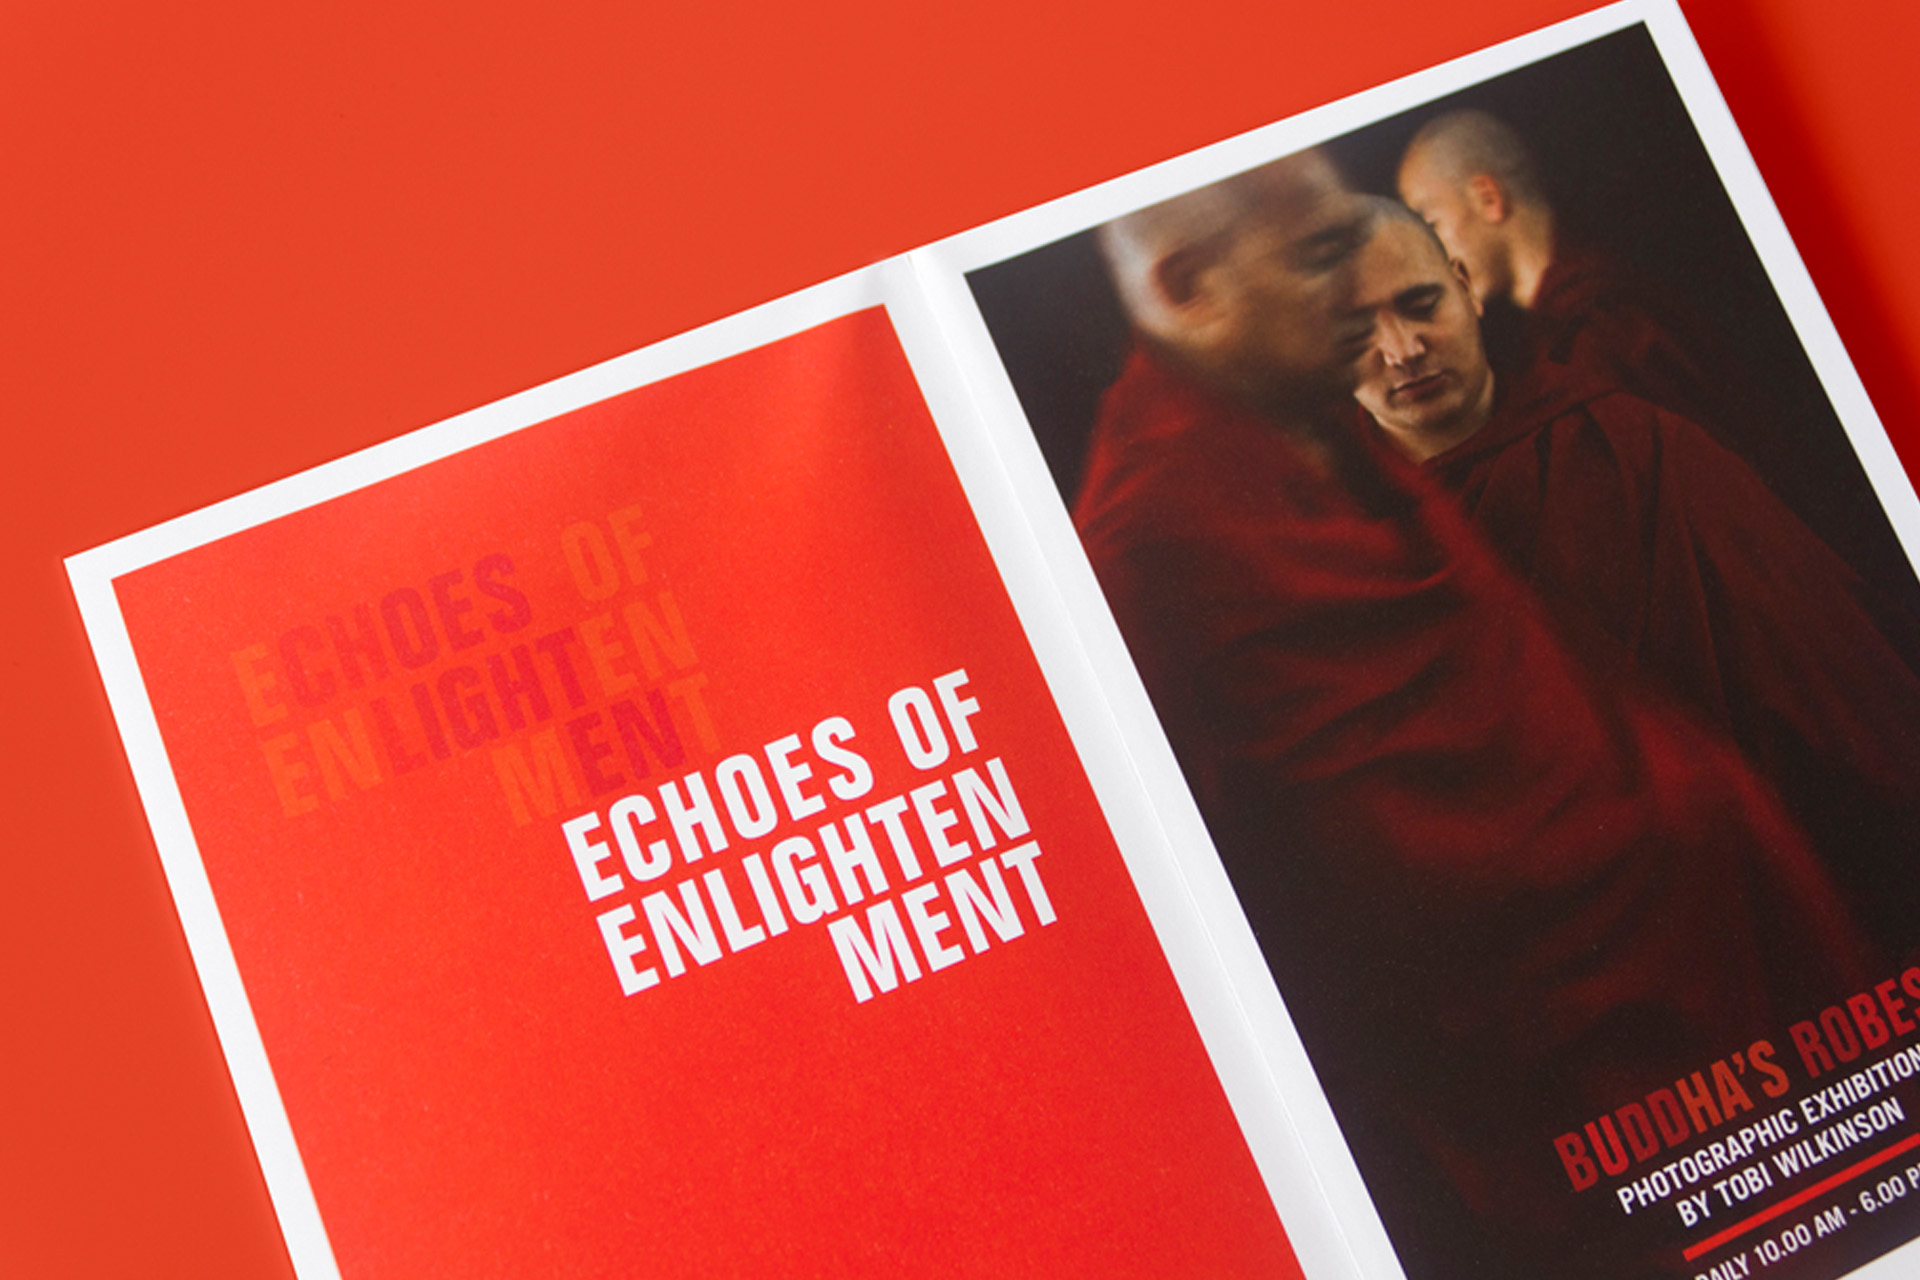 De zus van Kim Echoes of Enlightenment